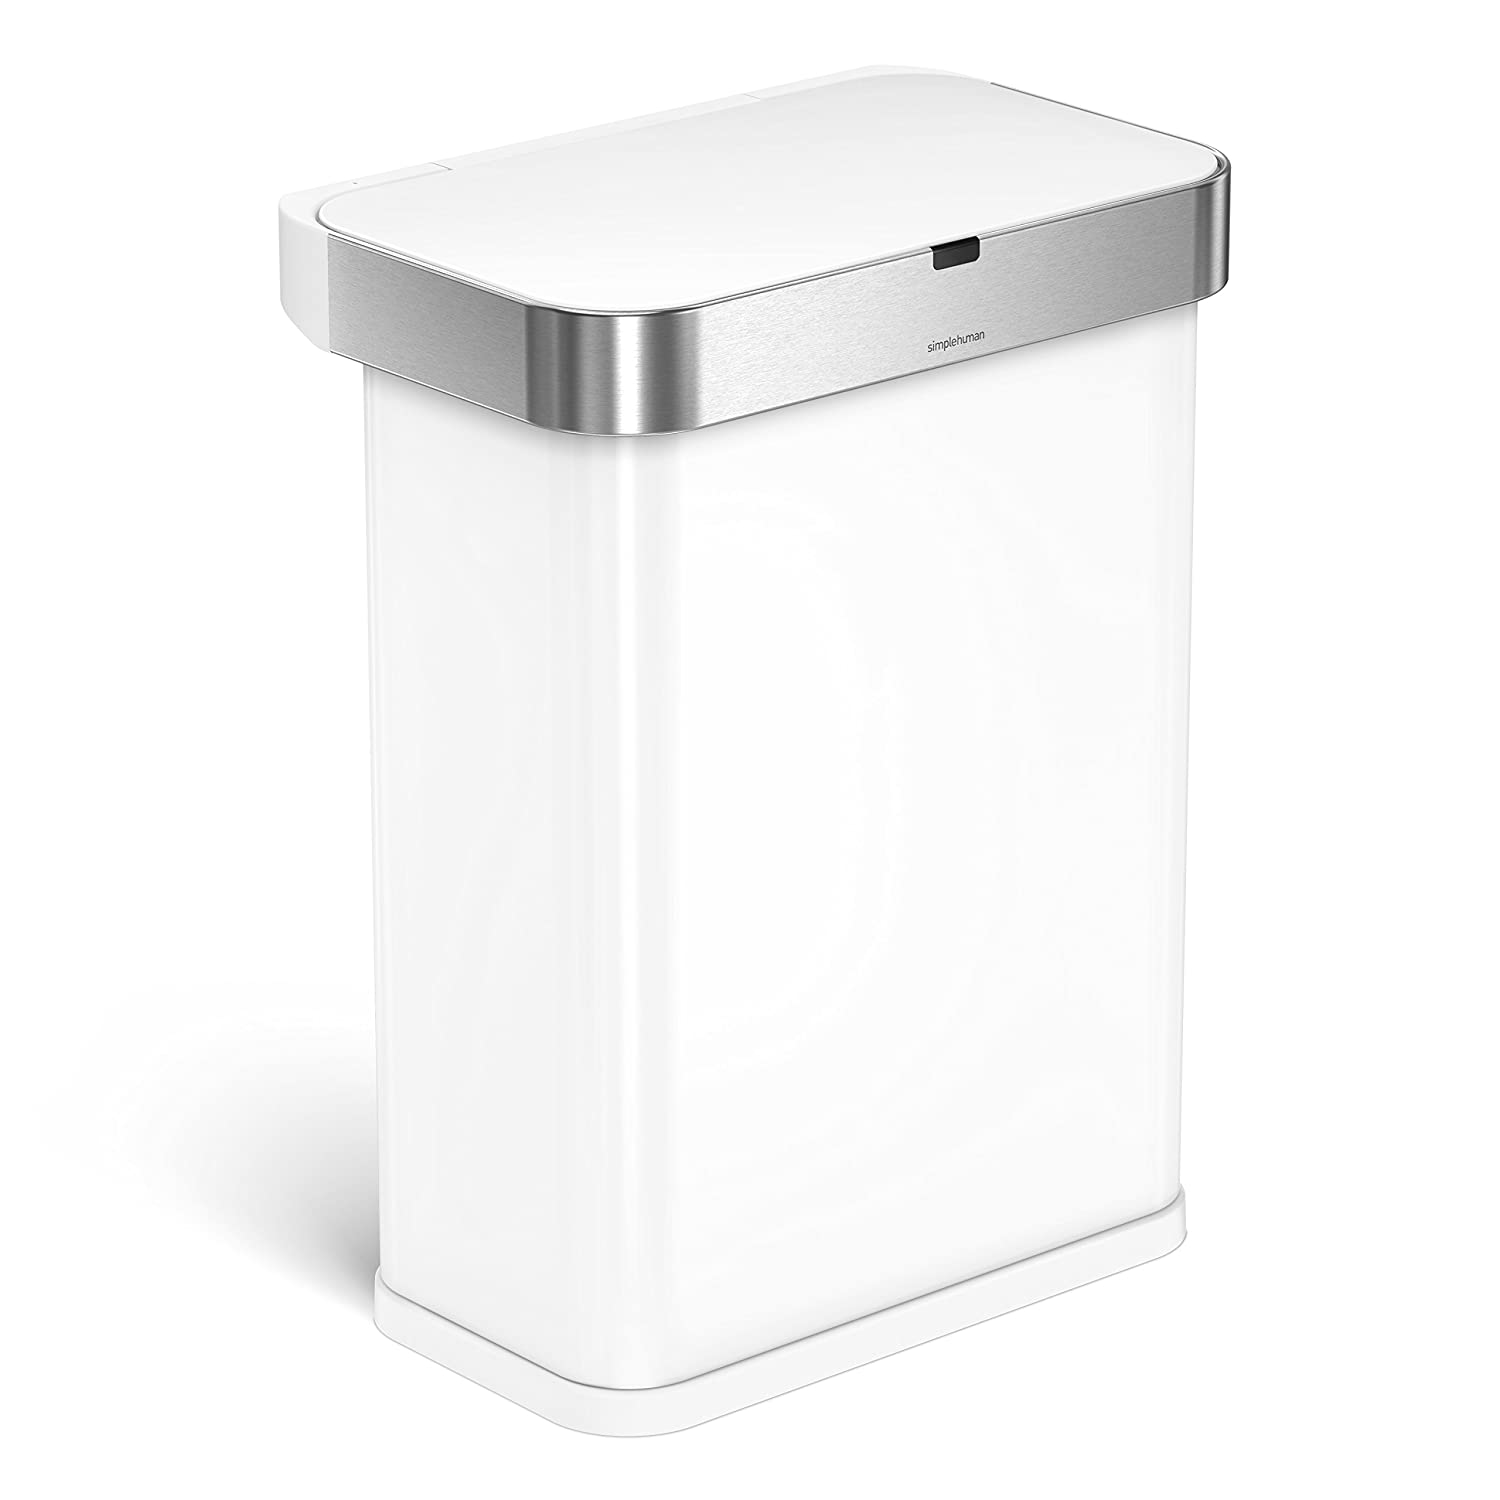 simplehuman 58 Liter / 15.3 Gallon 58L Stainless Steel Touch-Free Rectangular Kitchen Sensor Trash Can with Voice and Motion Sensor, Voice Activated, Black Stainless Steel ST2029